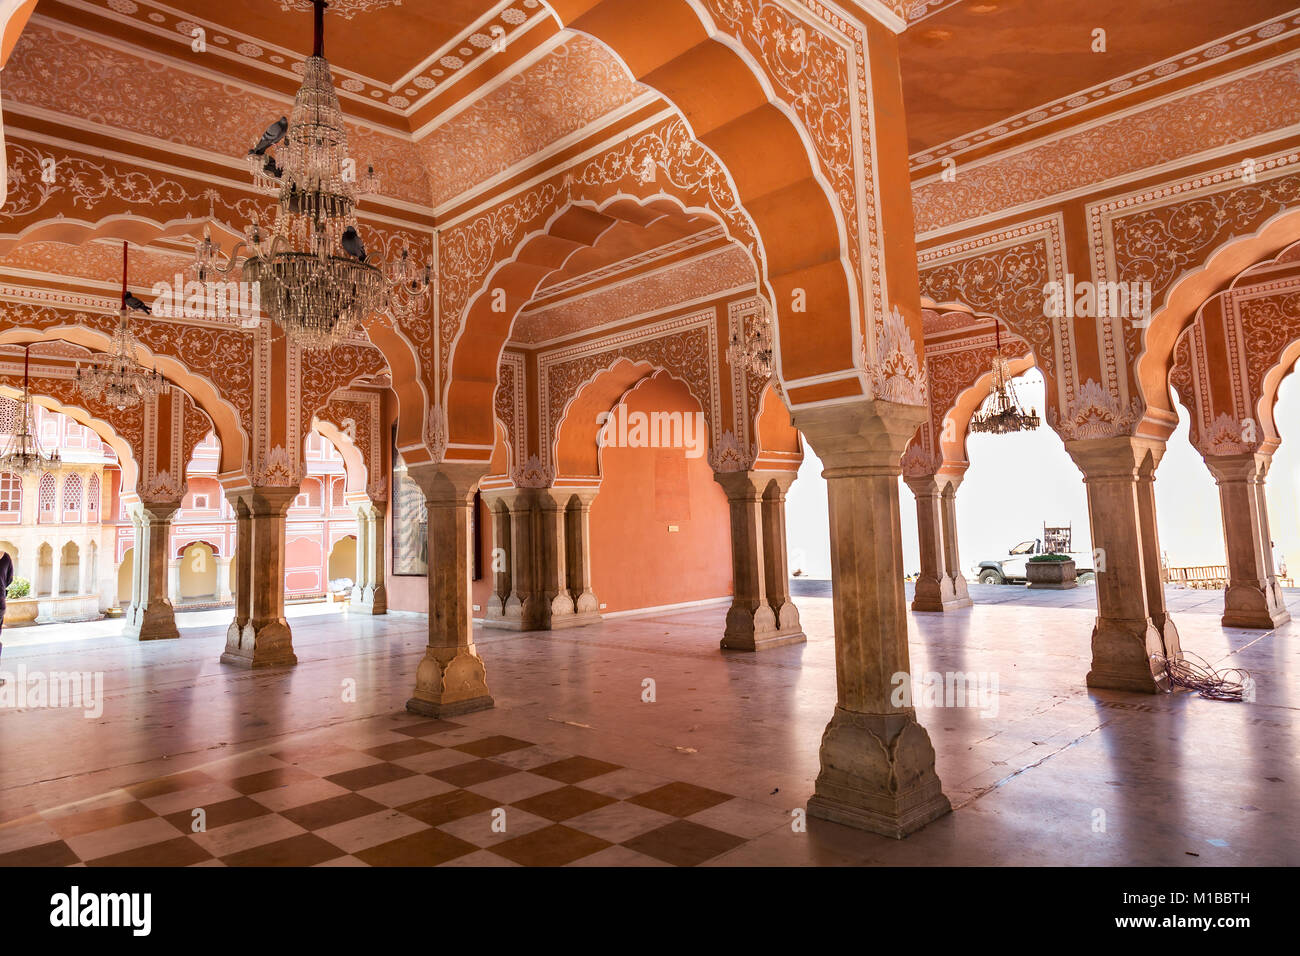 Chandra Mahal at City Palace Jaipur Rajasthan hallway with intricate wall art and pillar structure. - Stock Image